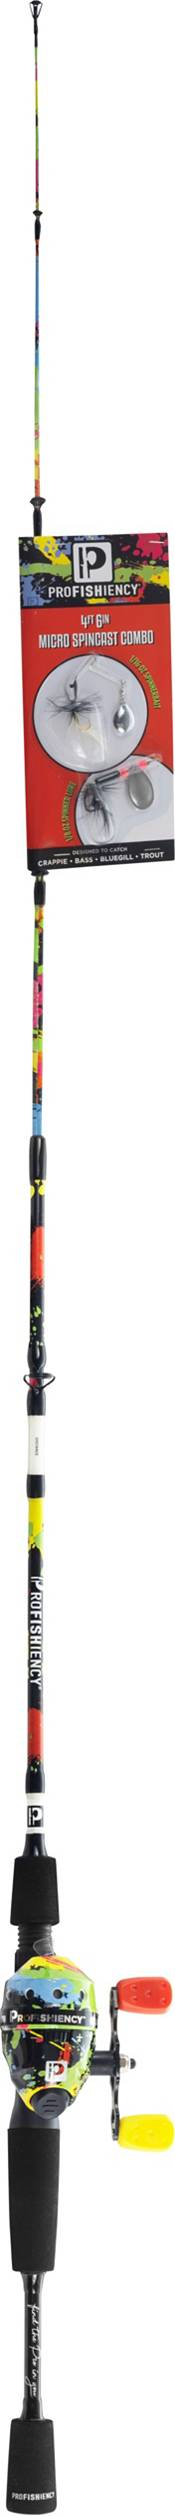 """Lil' Anglers Profishiency 4'6"""" Spincast Combo product image"""